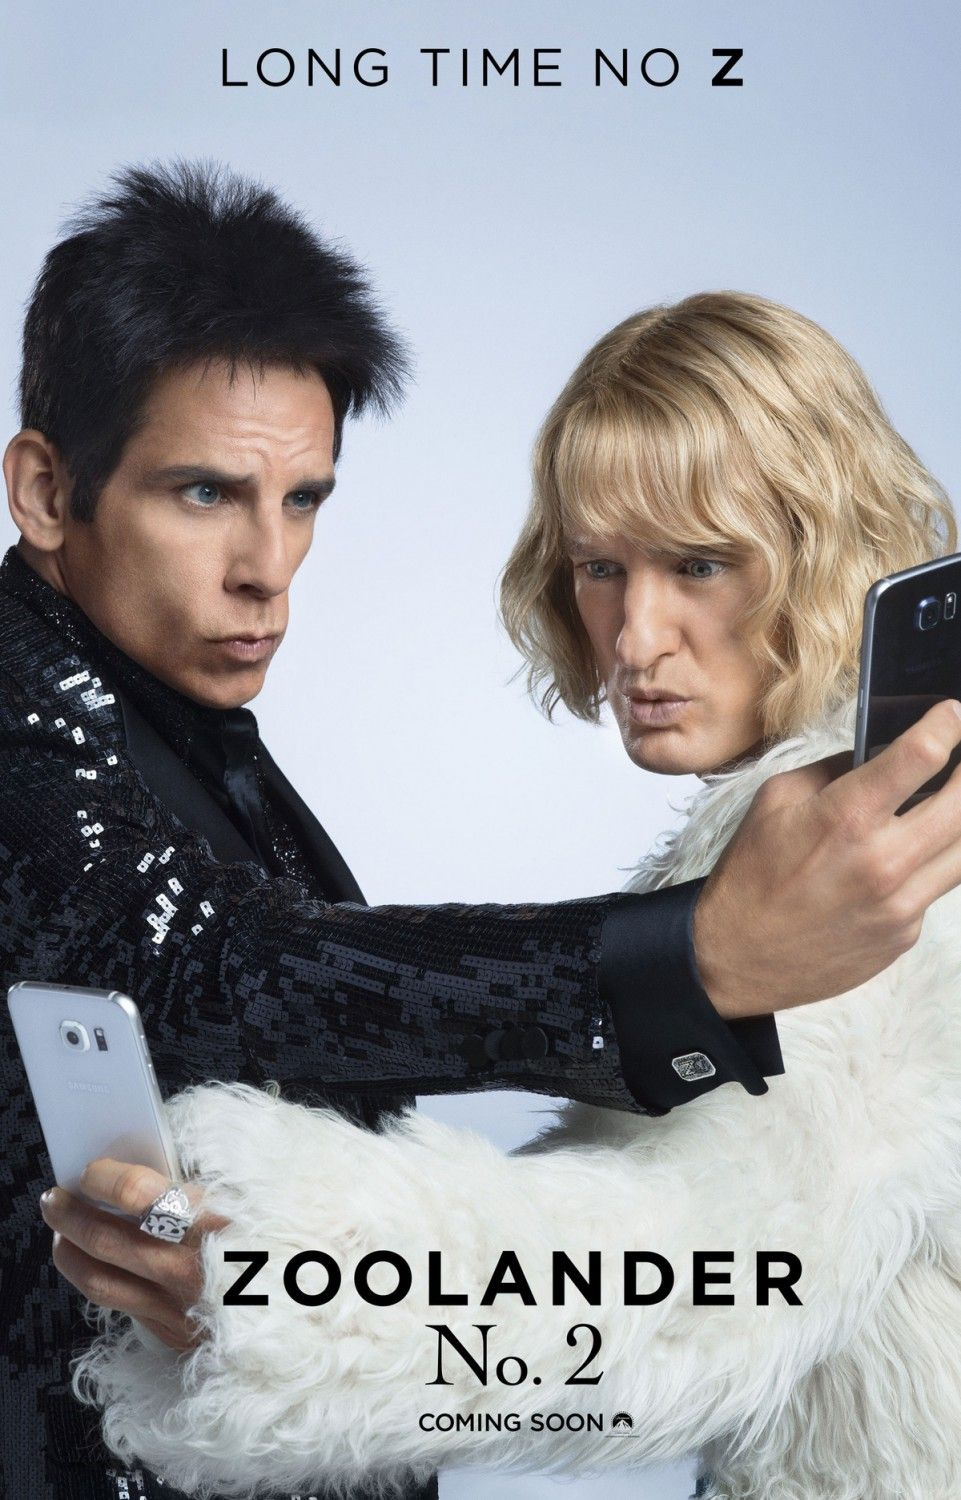 Zoolander 2 Extra Large Movie Poster Image Internet Movie Poster Awards Gallery Zoolander 2 Movie Movie Posters